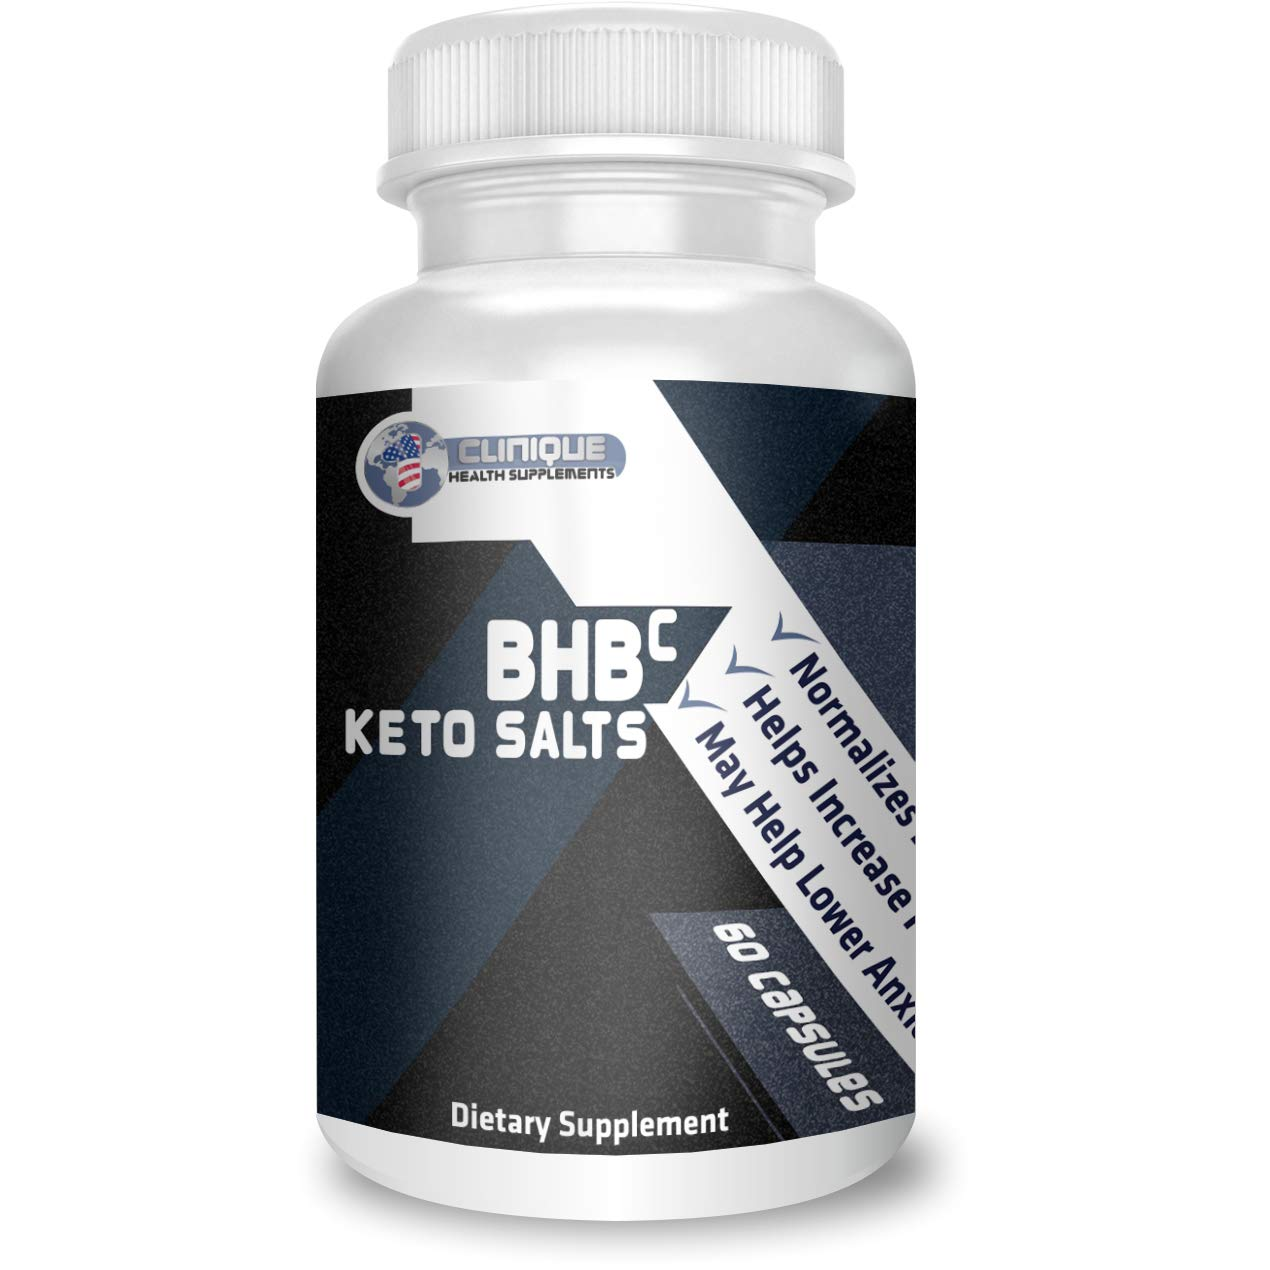 1Clinique's BHB Keto Salts | Value Pack 6 x 60 Capsules | Supports ketosis | Magnesium, Calcium, and Sodium Beta-Hydroxybutyrate | Pure Energy Source | Made in USA by 1Clinique (Image #4)